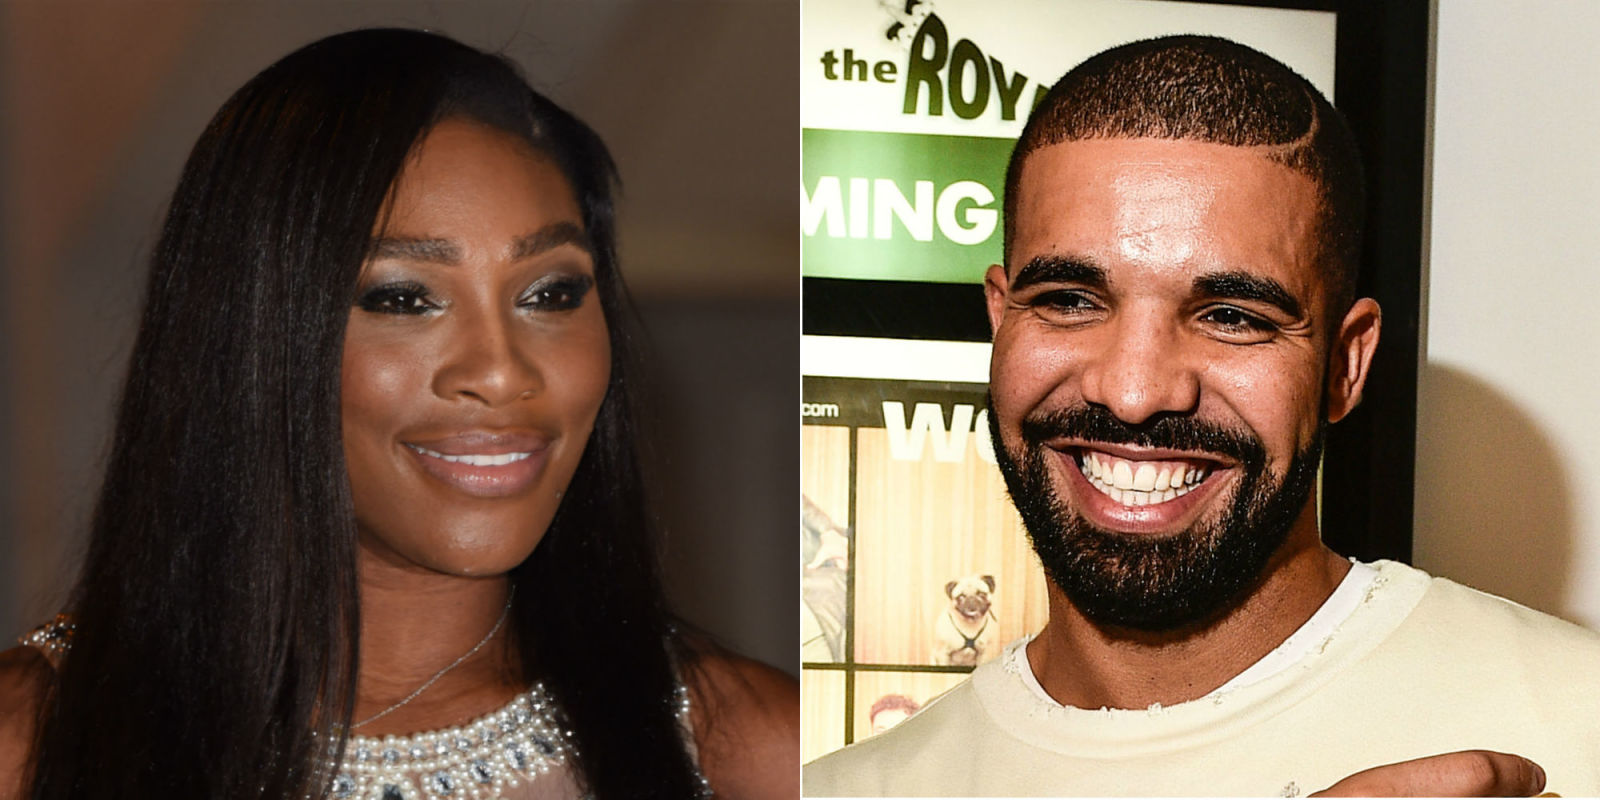 sophia marie and drake dating Currently swift is dating it is also rumored that rihanna has been on an on-again and off-again relationship with drake and dollicia bryan, sophia marie.